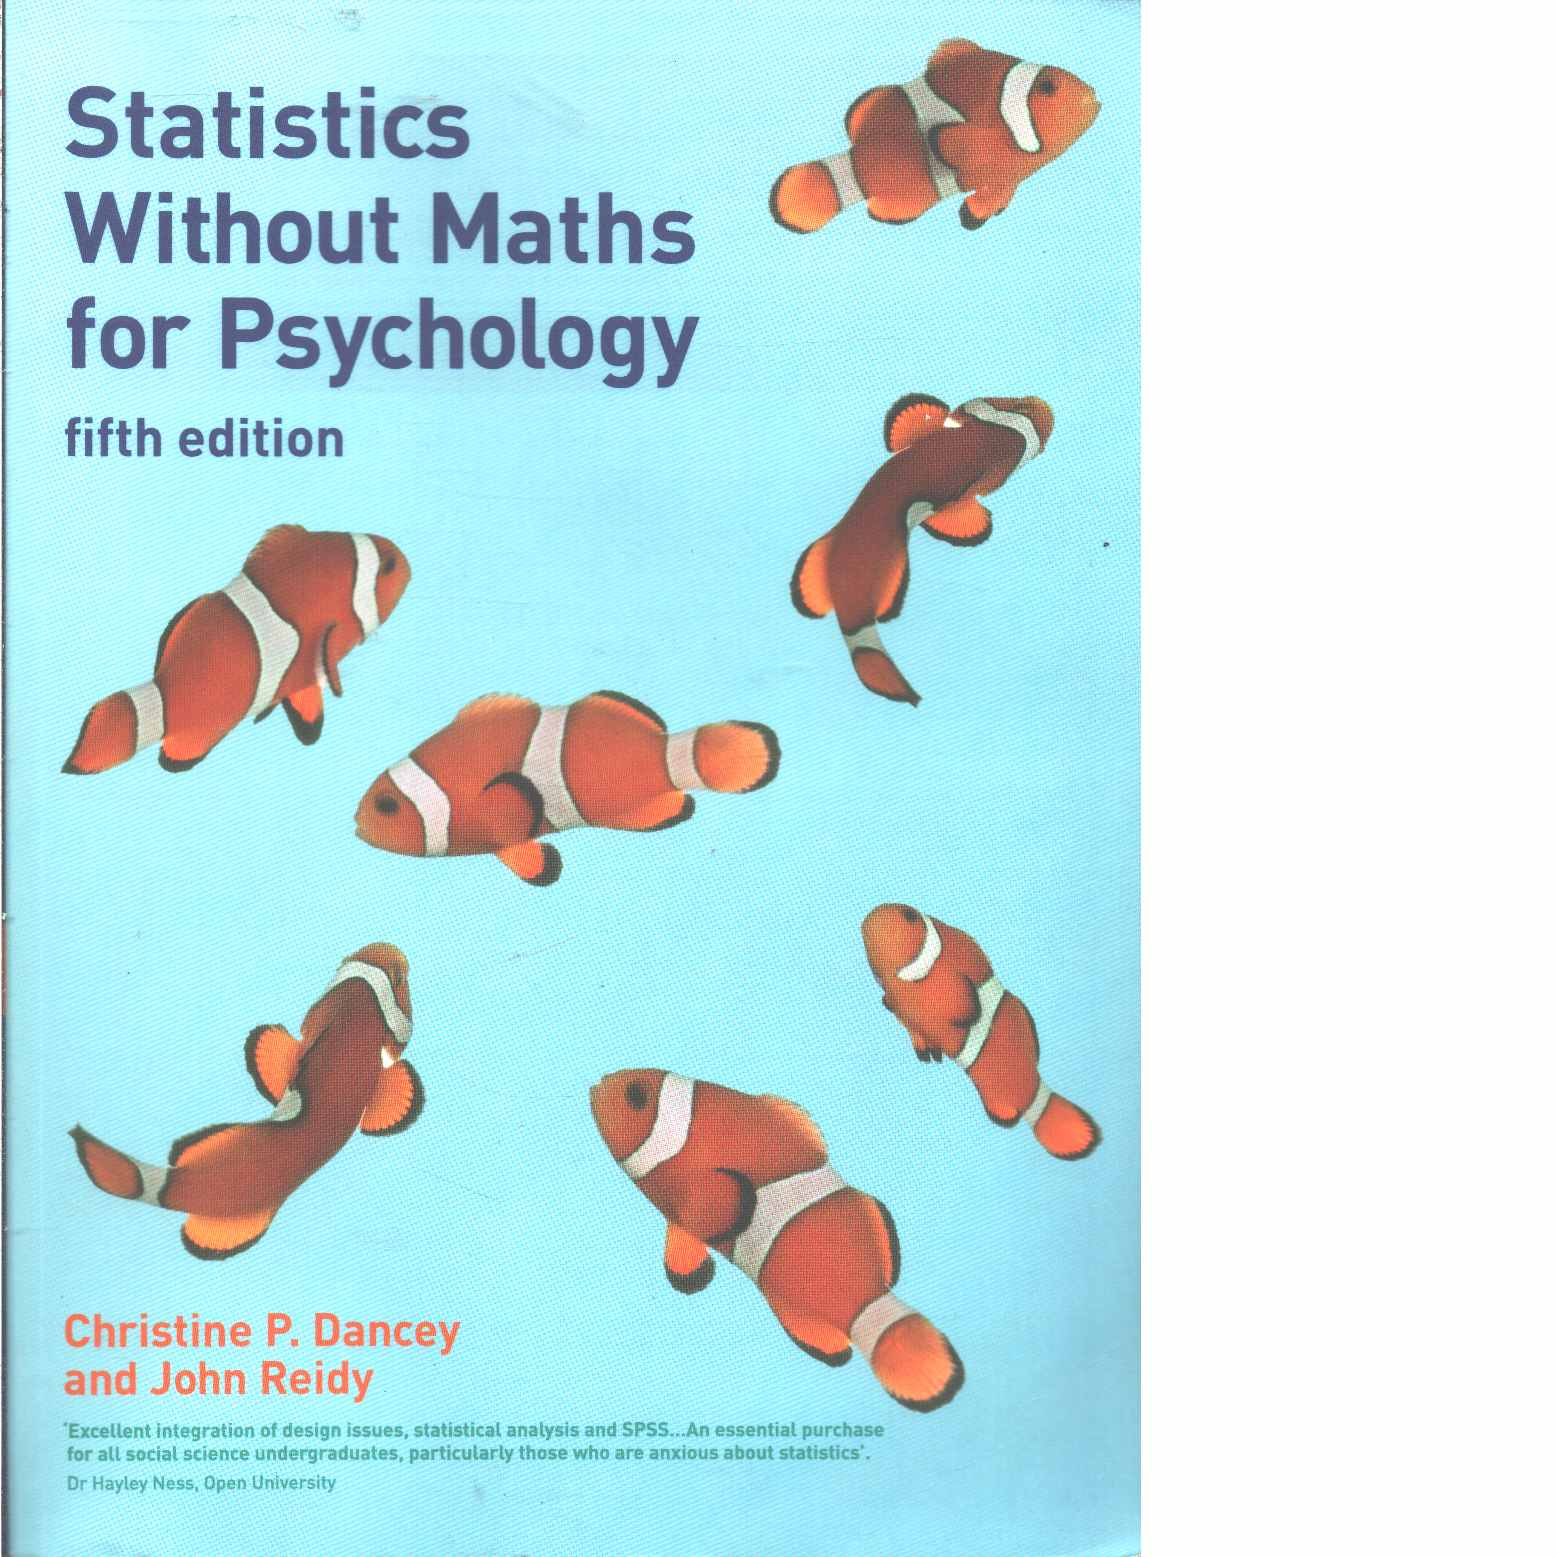 Statistics without maths for psychology  - Dancey, Christine P. and Reidy, John.